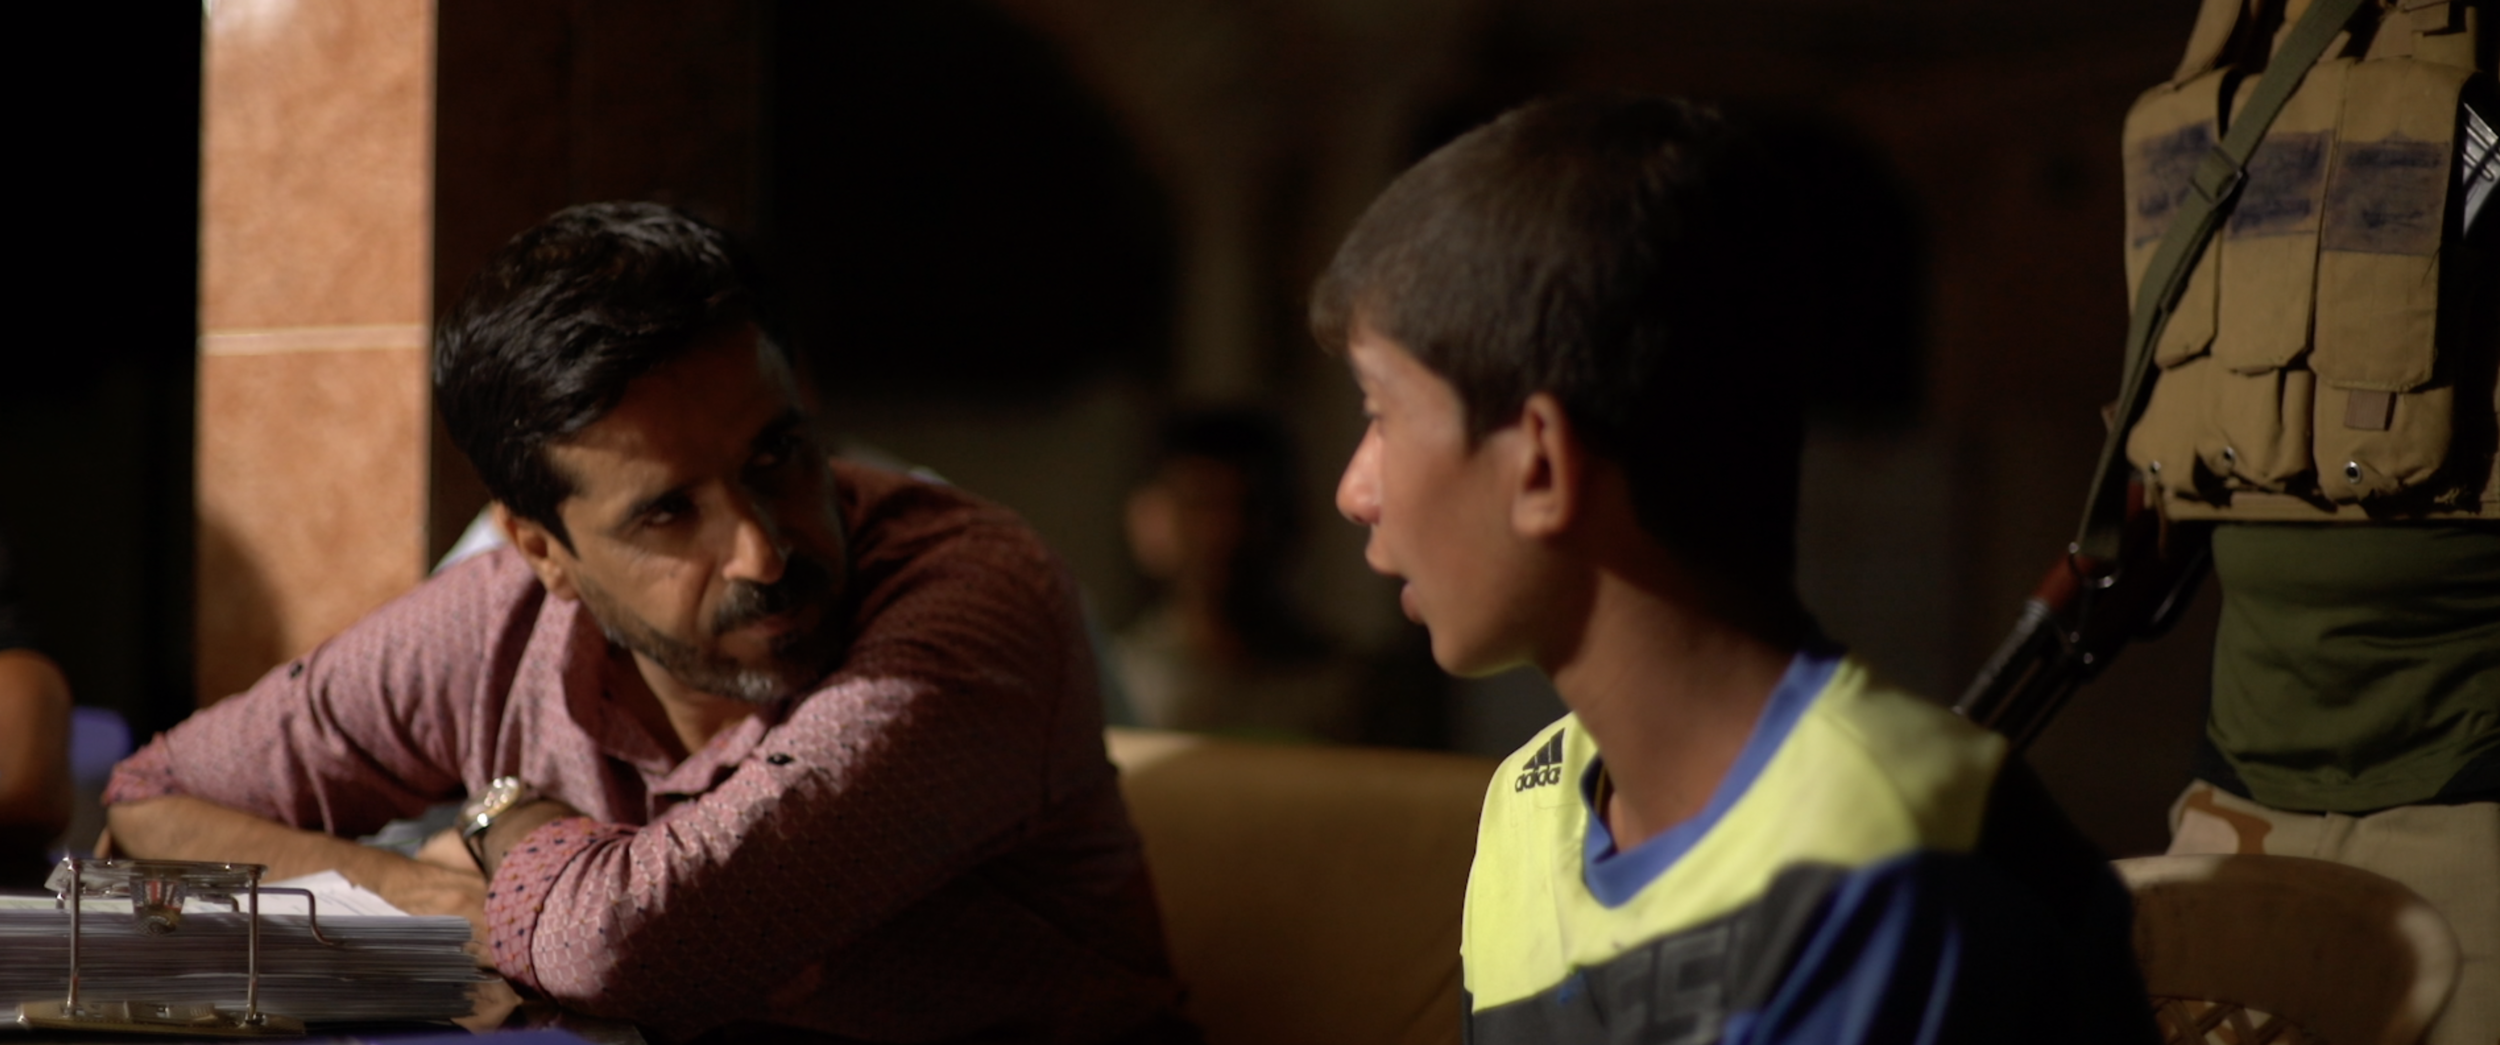 Journalist Ali Maula talks to young Abdullah about life under ISIS.png